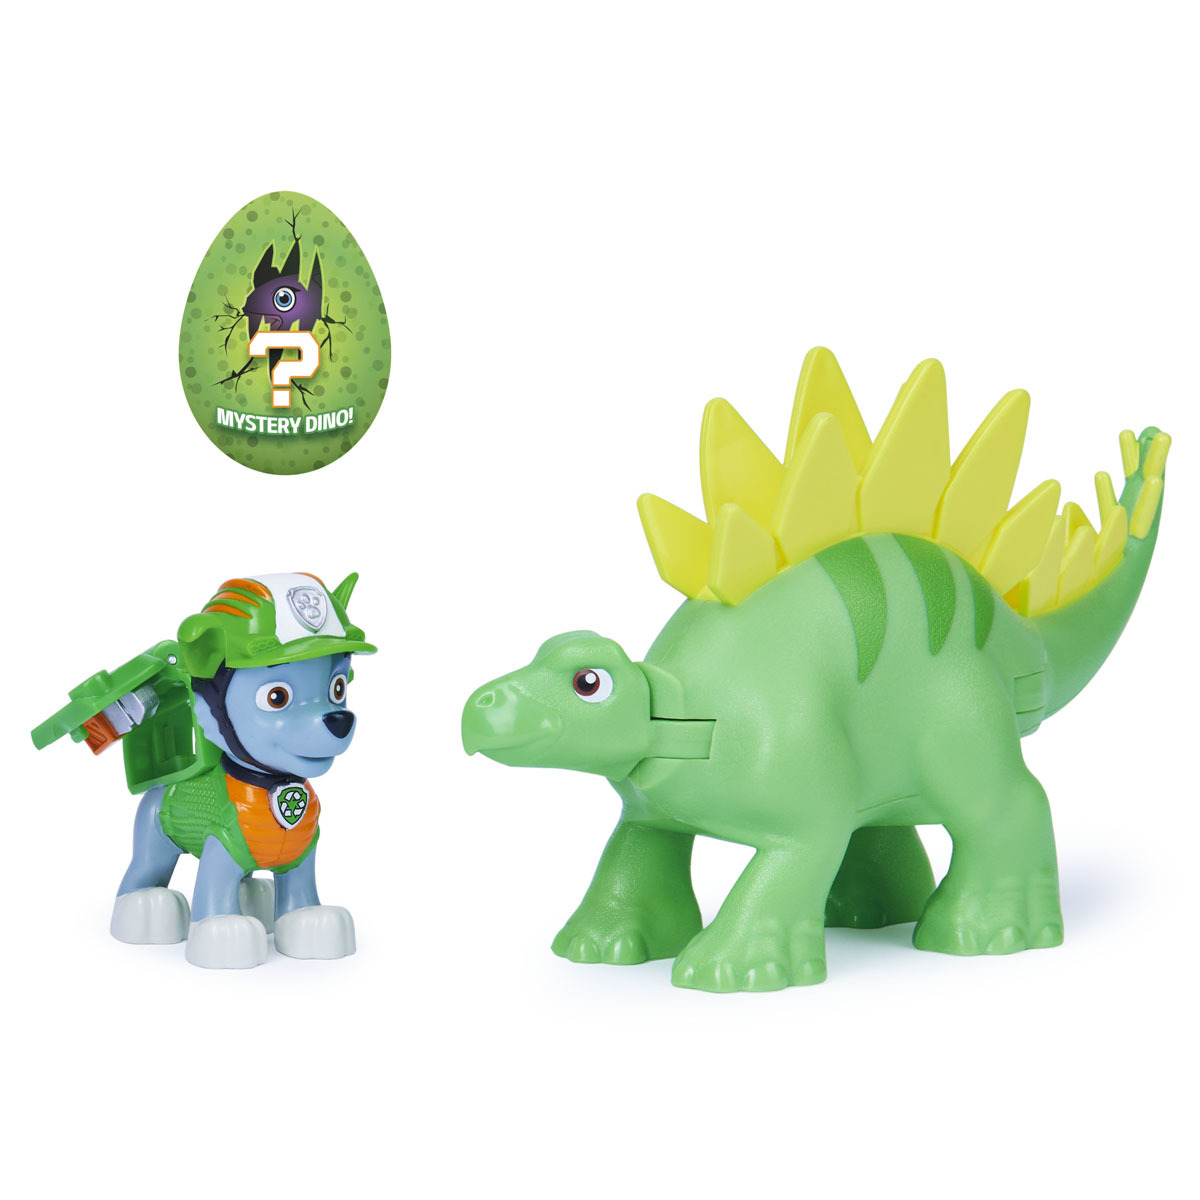 Paw Patrol Dino Rescue Figures and Mystery Dinosaur - Rocky and Stegosaurus from Early Learning Center